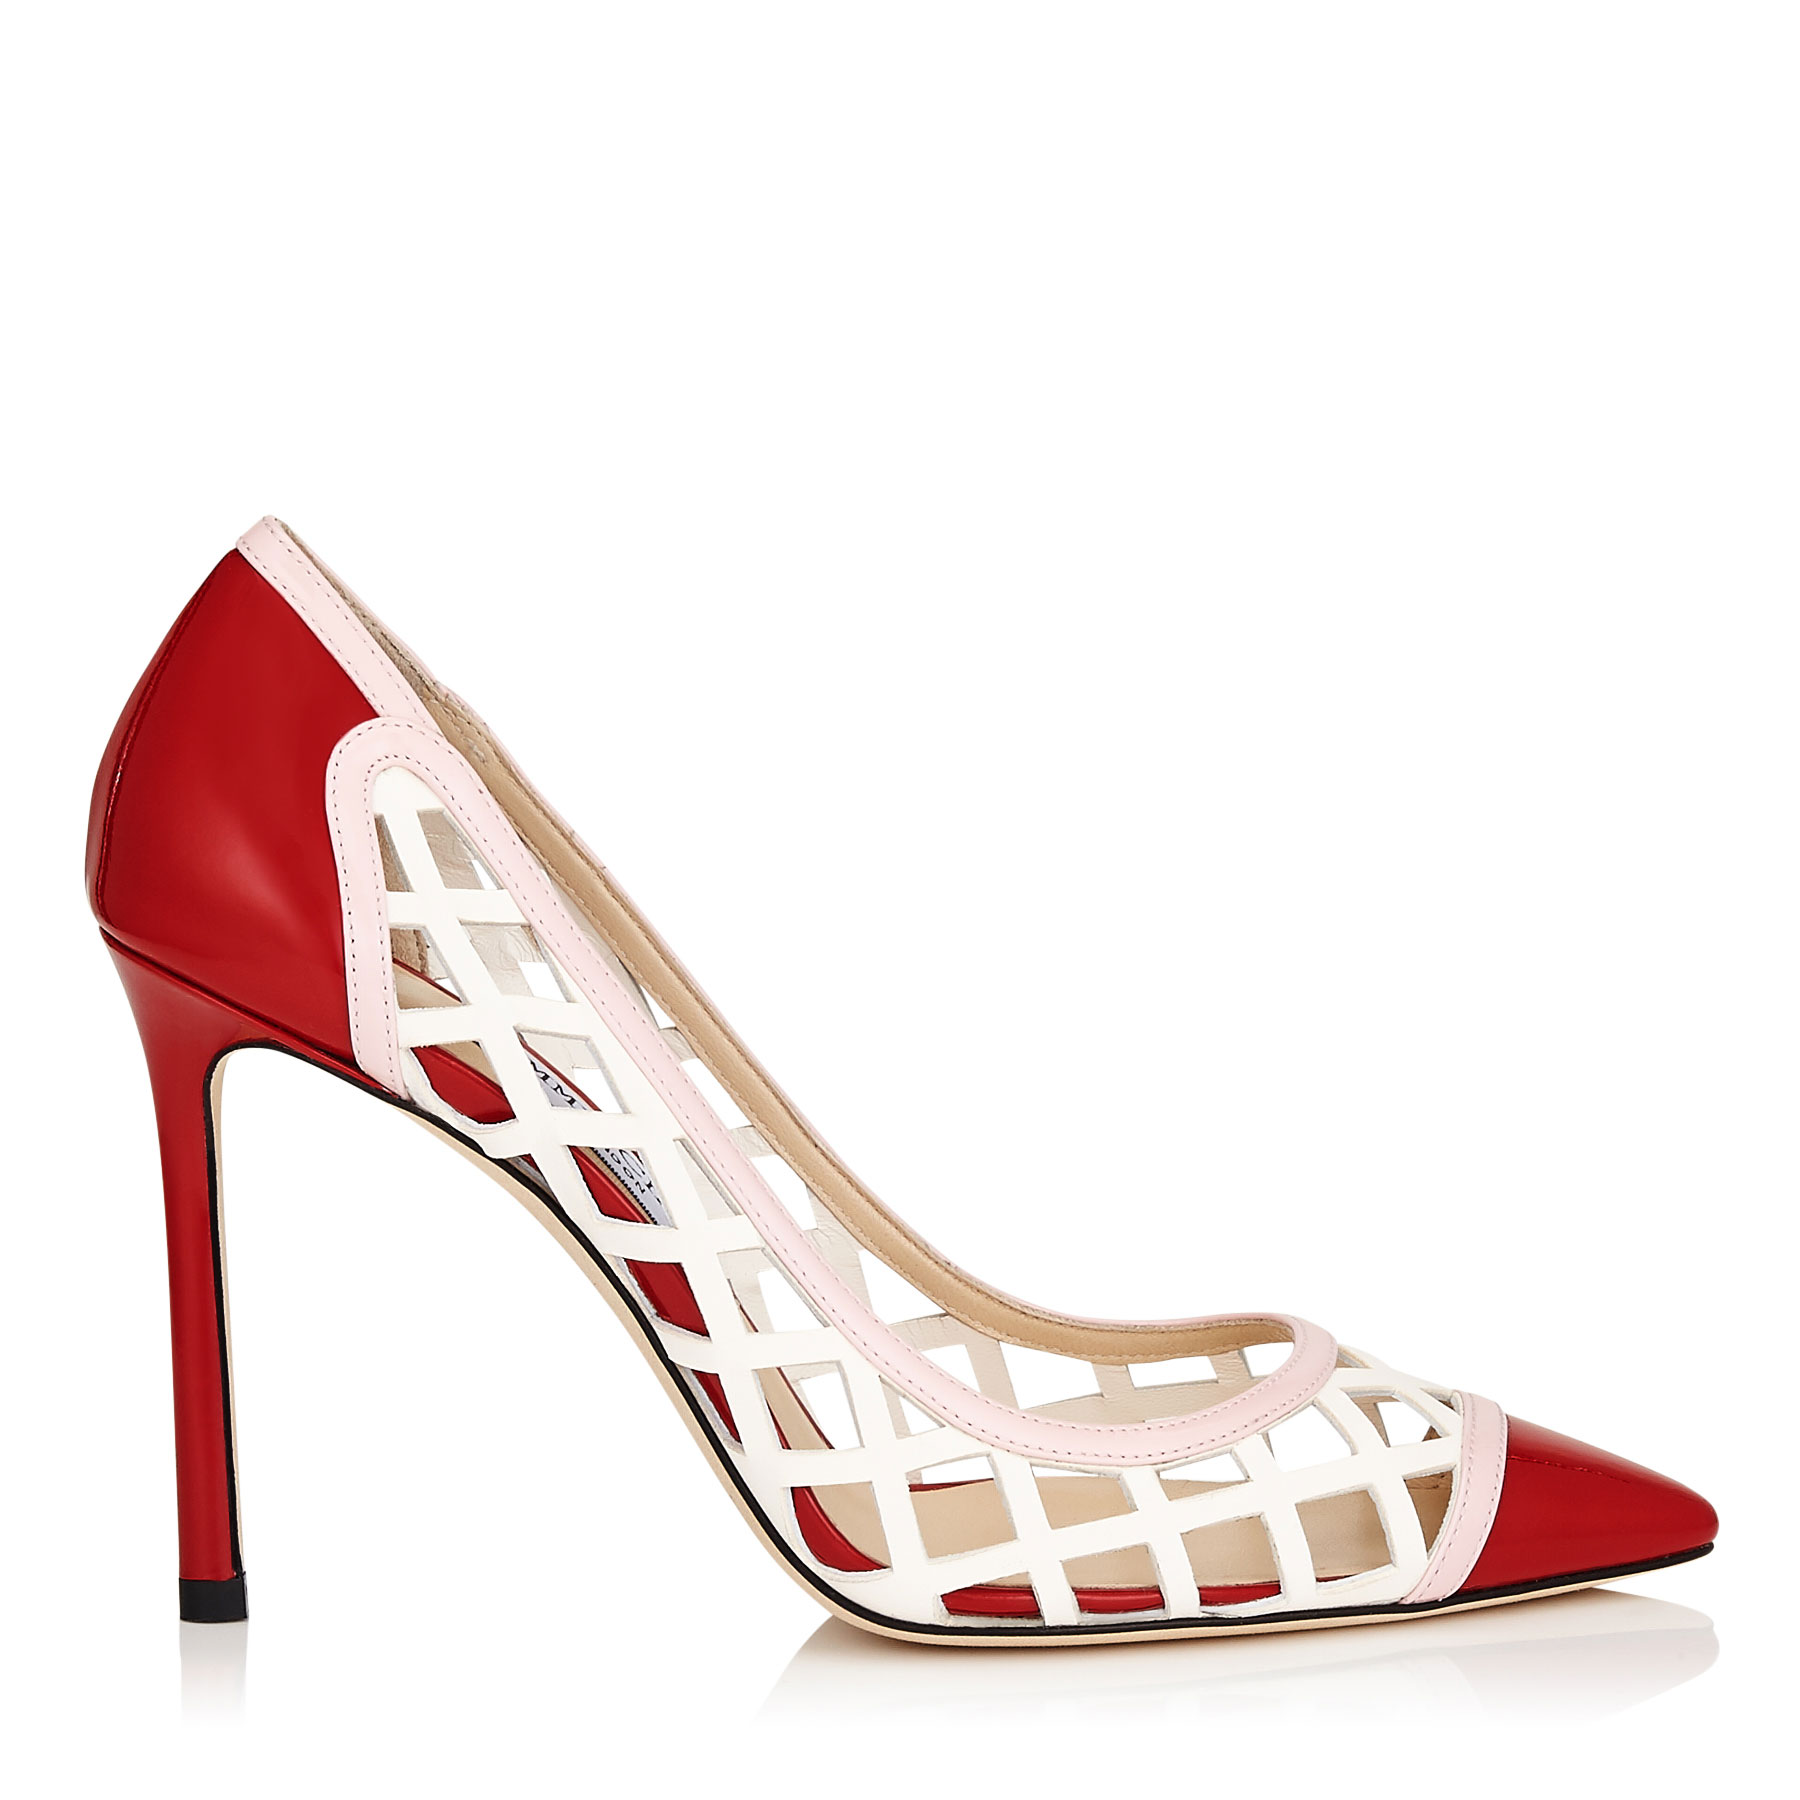 ROMY 100 Rosewater Diamond Perforated and Patent Mix Pointy Toe Pumps by Jimmy Choo